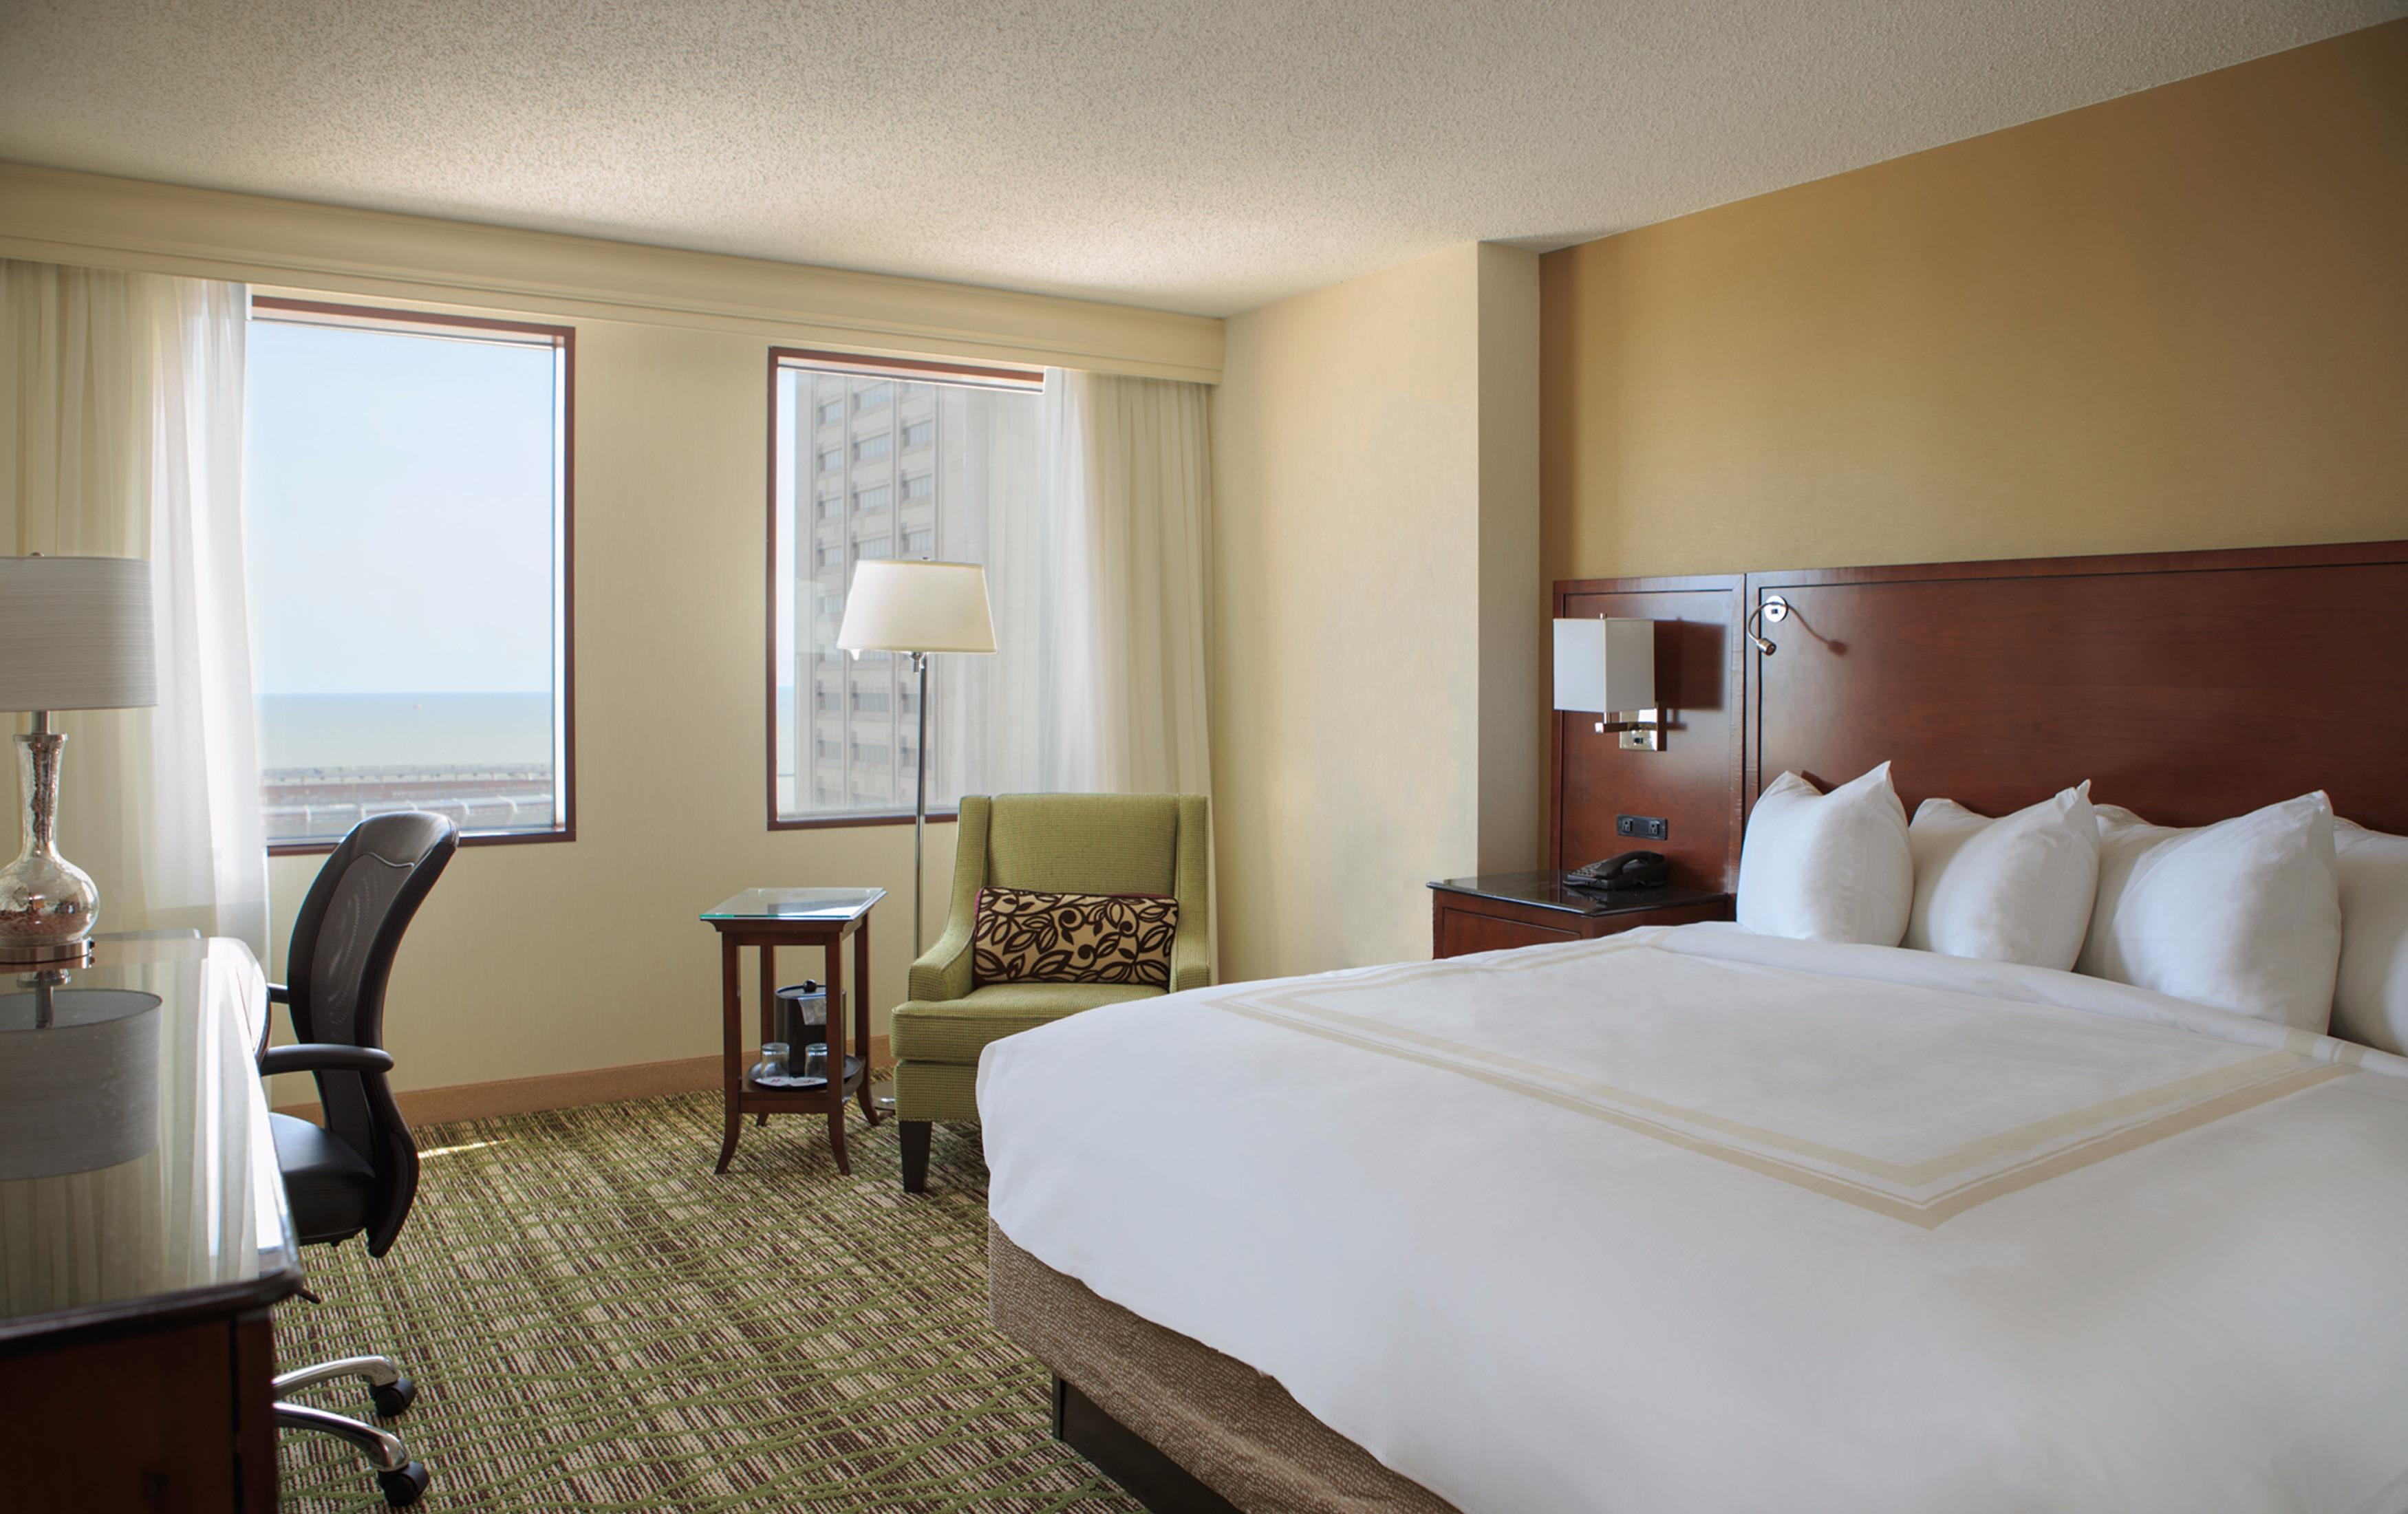 Whether you're here to work or play, effortlessly unwind in our renovated rooms with flat-screen TVs and sleek new furniture.